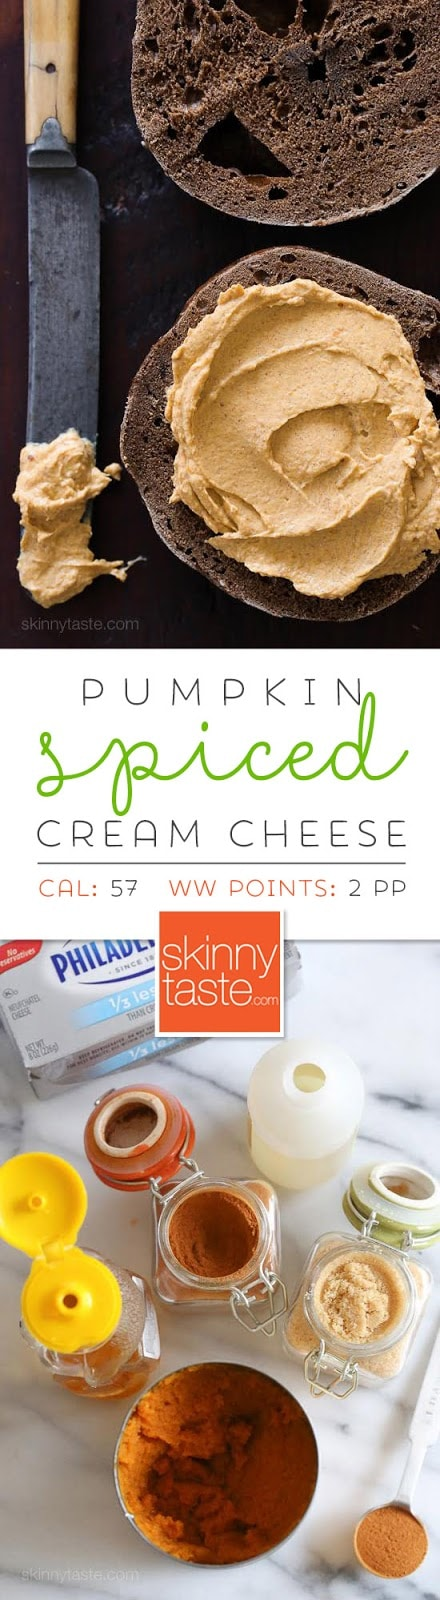 Pumpkin Spiced Cream Cheese – an easy way to enjoy a taste of Fall for breakfast!